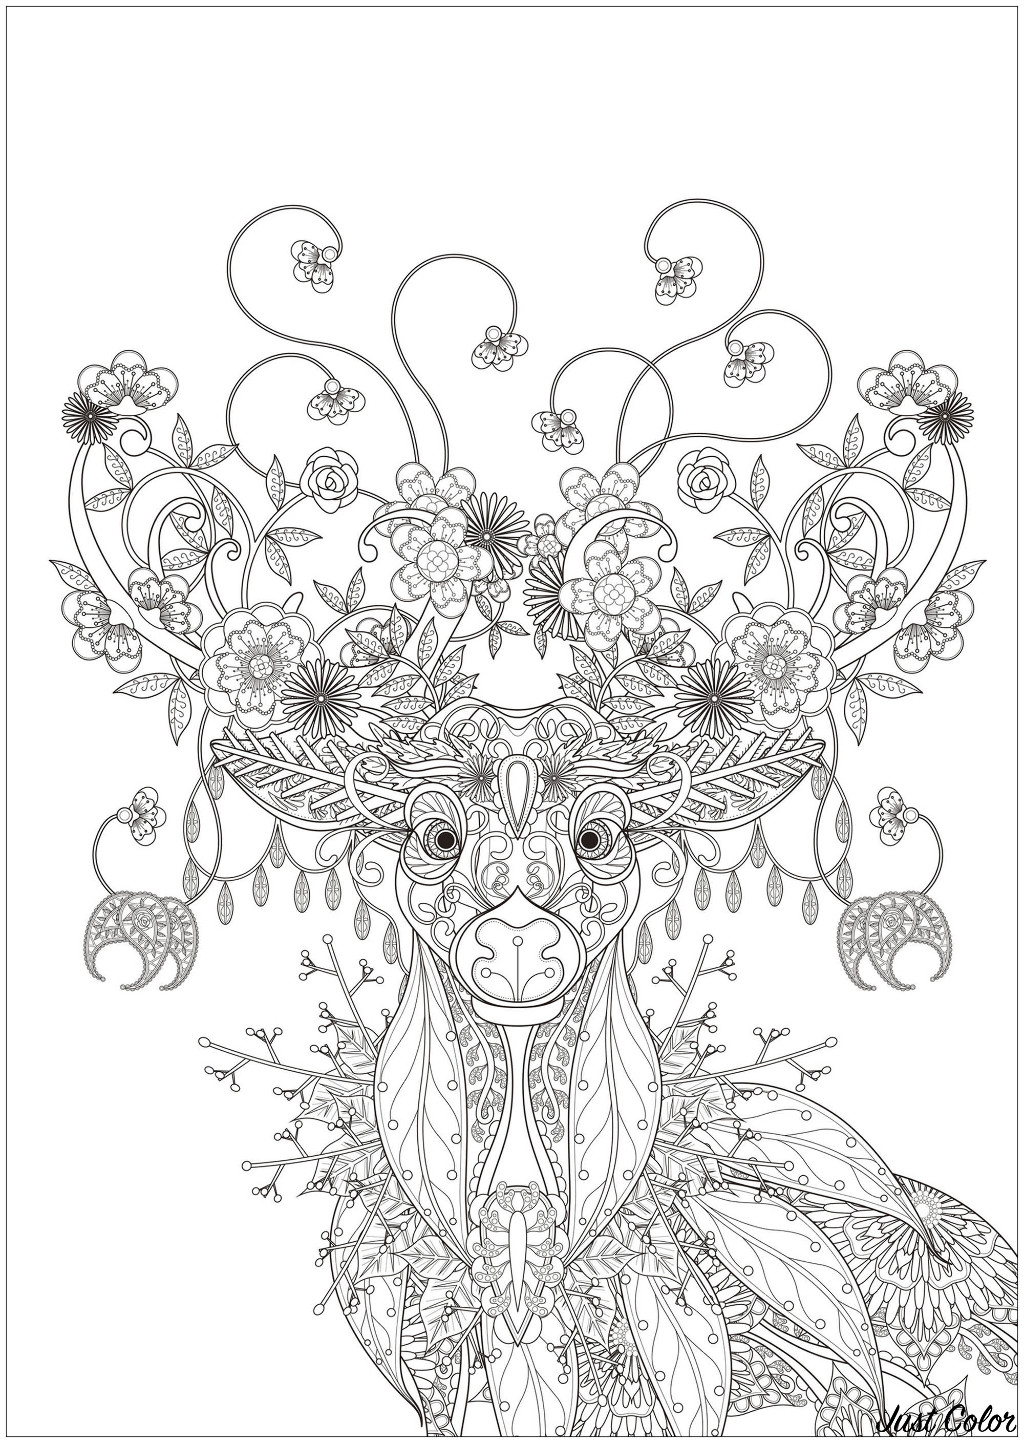 Magnificent Deer drawn with elements inspired by nature : flowers, leaves, tree branches ...